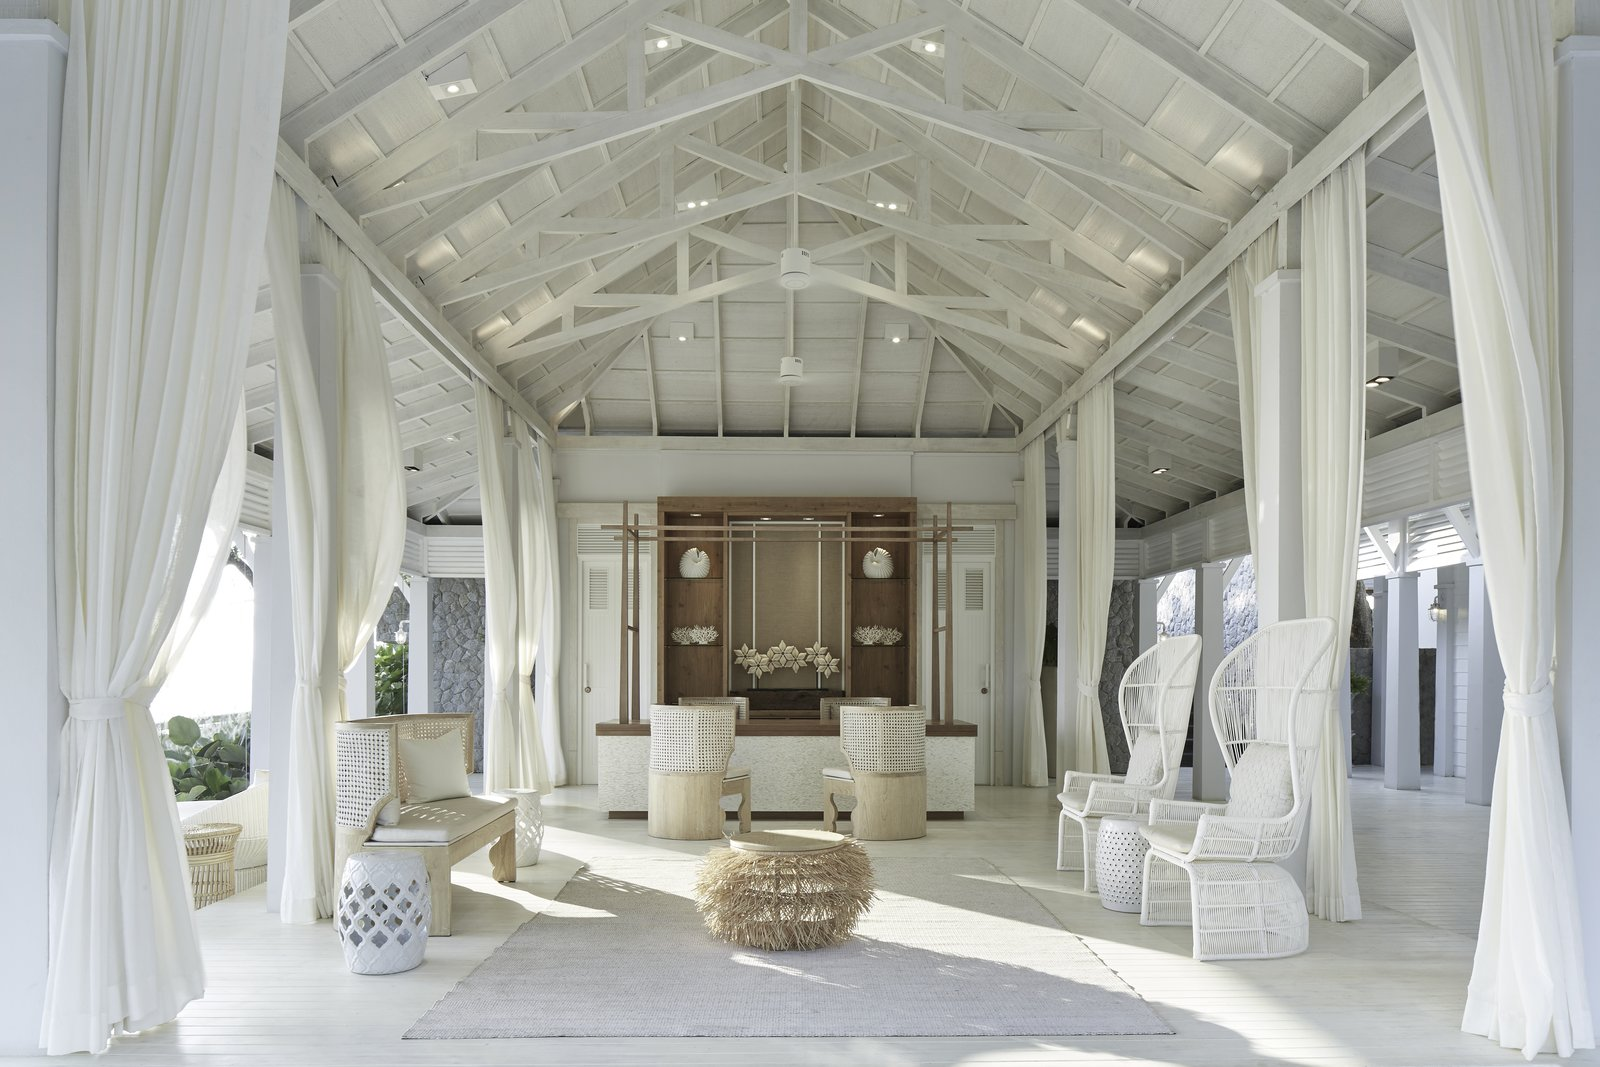 Living Room, Chair, Coffee Tables, Ottomans, Painted Wood Floor, and Ceiling Lighting A color palette of white, blue and grey along with white washed wood brings a breezy, tropical-nautical look to Cape Kudu Hotel on the peaceful island paradise of Koh Yao Noi in Thailand.  Photo 12 of 13 in Hide Out in One of These Asian Retreats That Are Immersed in Nature